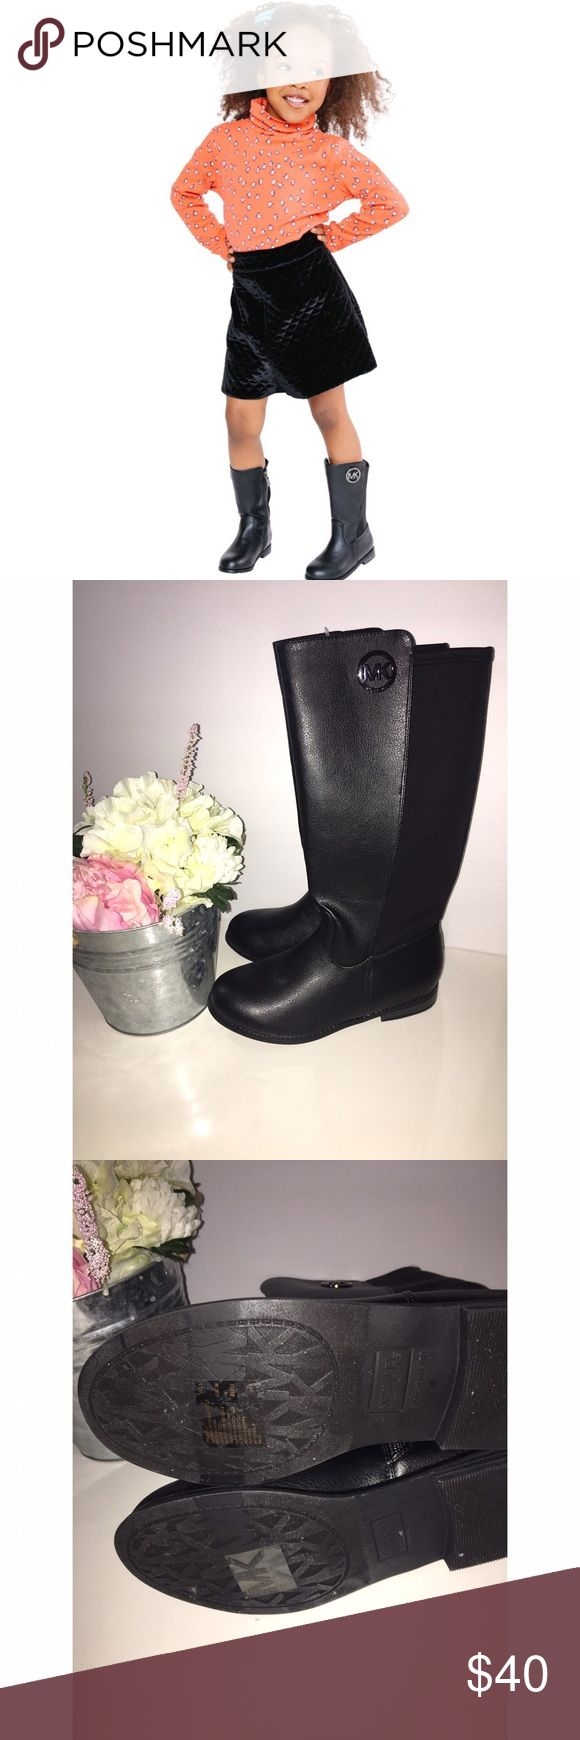 "Michael Kors Girls' Boots Emma Lily Brand New Never Worn ❗️  Michael Kors Girls' Boots Emma Lily  Your little diva need these MK boots to match mama's fly 😍  Sleek and Smooth riding boots. Subtle detail with MK round ornament.   Black  Round toe   Approx. 12"" shaft height  Approx. 1"" heel  Leg Circumference approx: 12"" Side zipper closure  Rubber sole   Original box not available  Photo Cred: Kidsshoes.com  Make me an offer 😉 Michael Kors Shoes Boots"